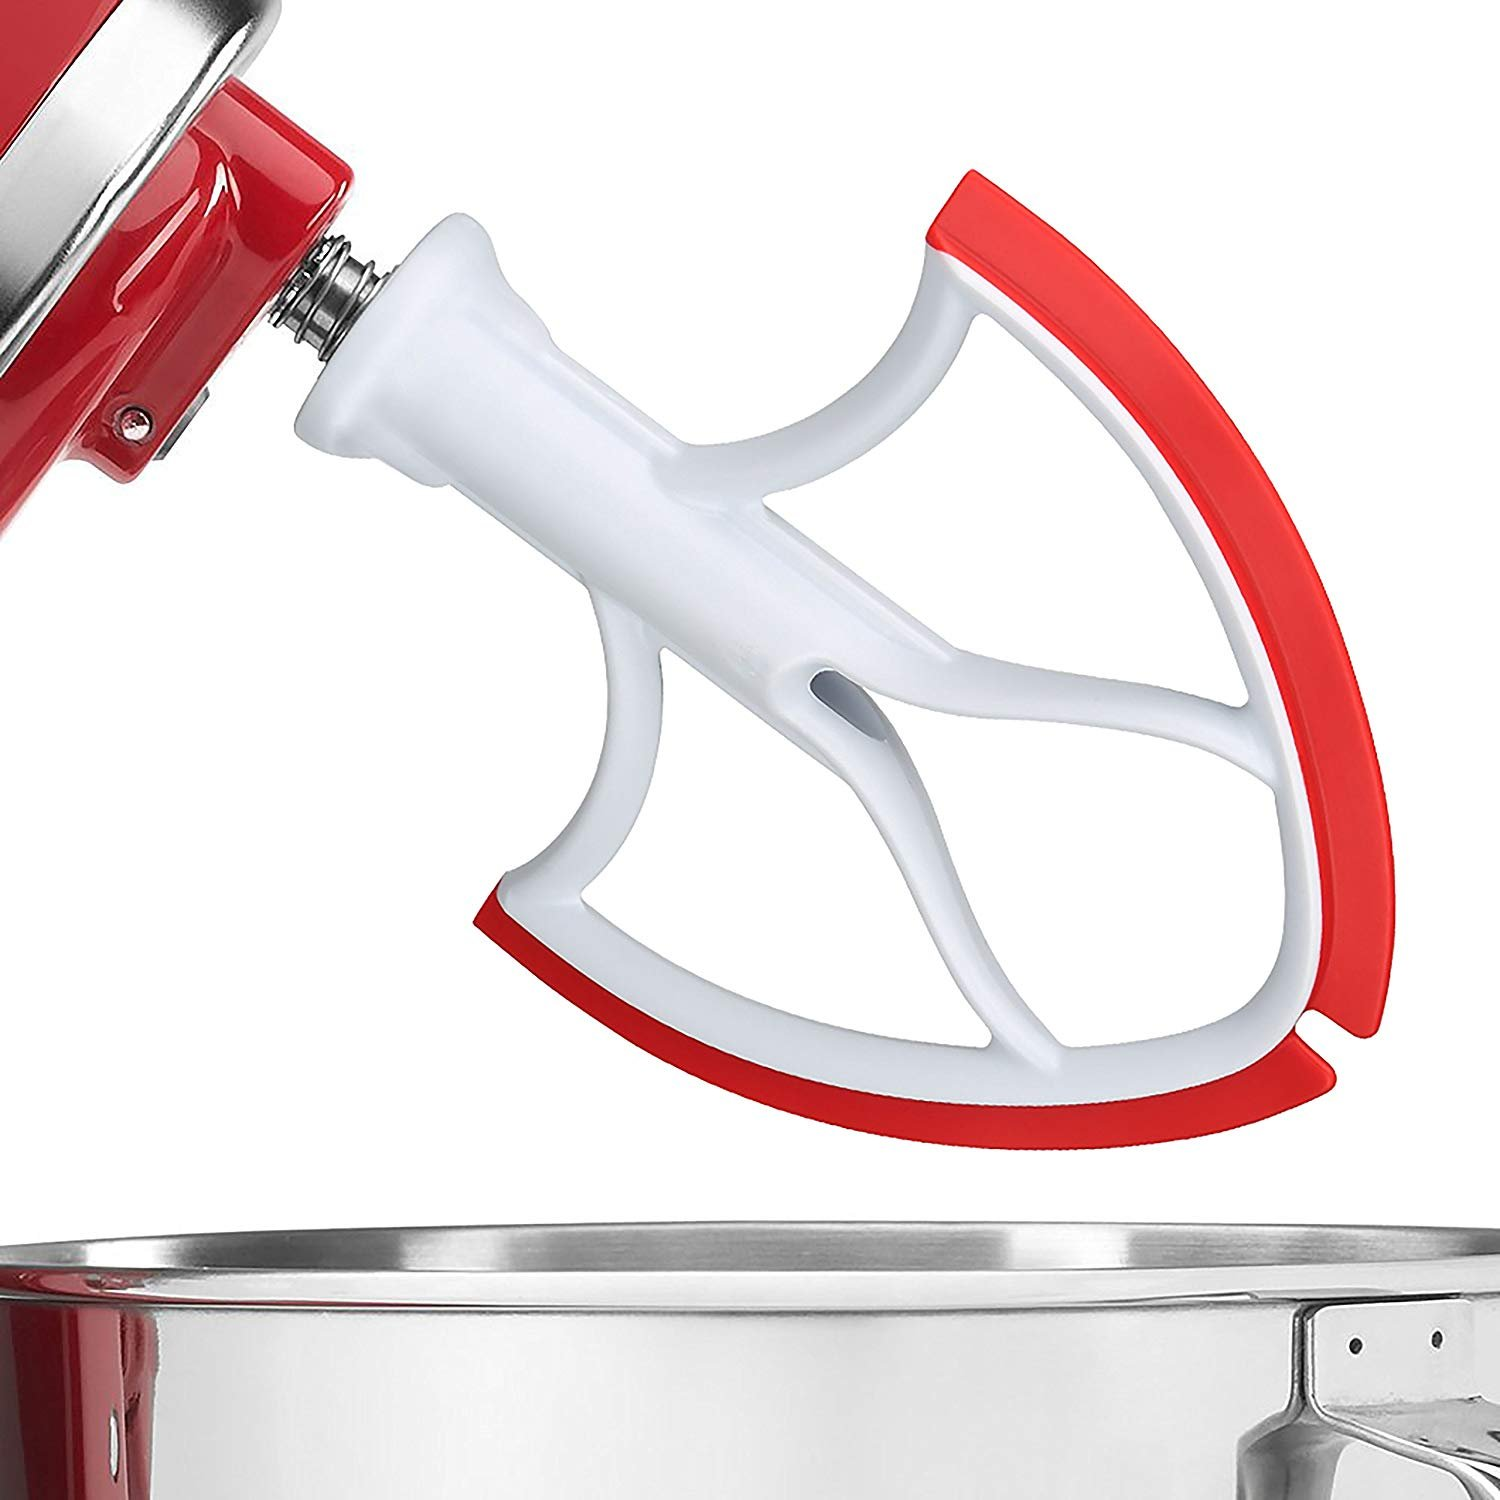 Flex Edge Beater for KitchenAid 5-Quart Bowl Lift Tilt-Head Stand Mixers,Made in the USA (red)